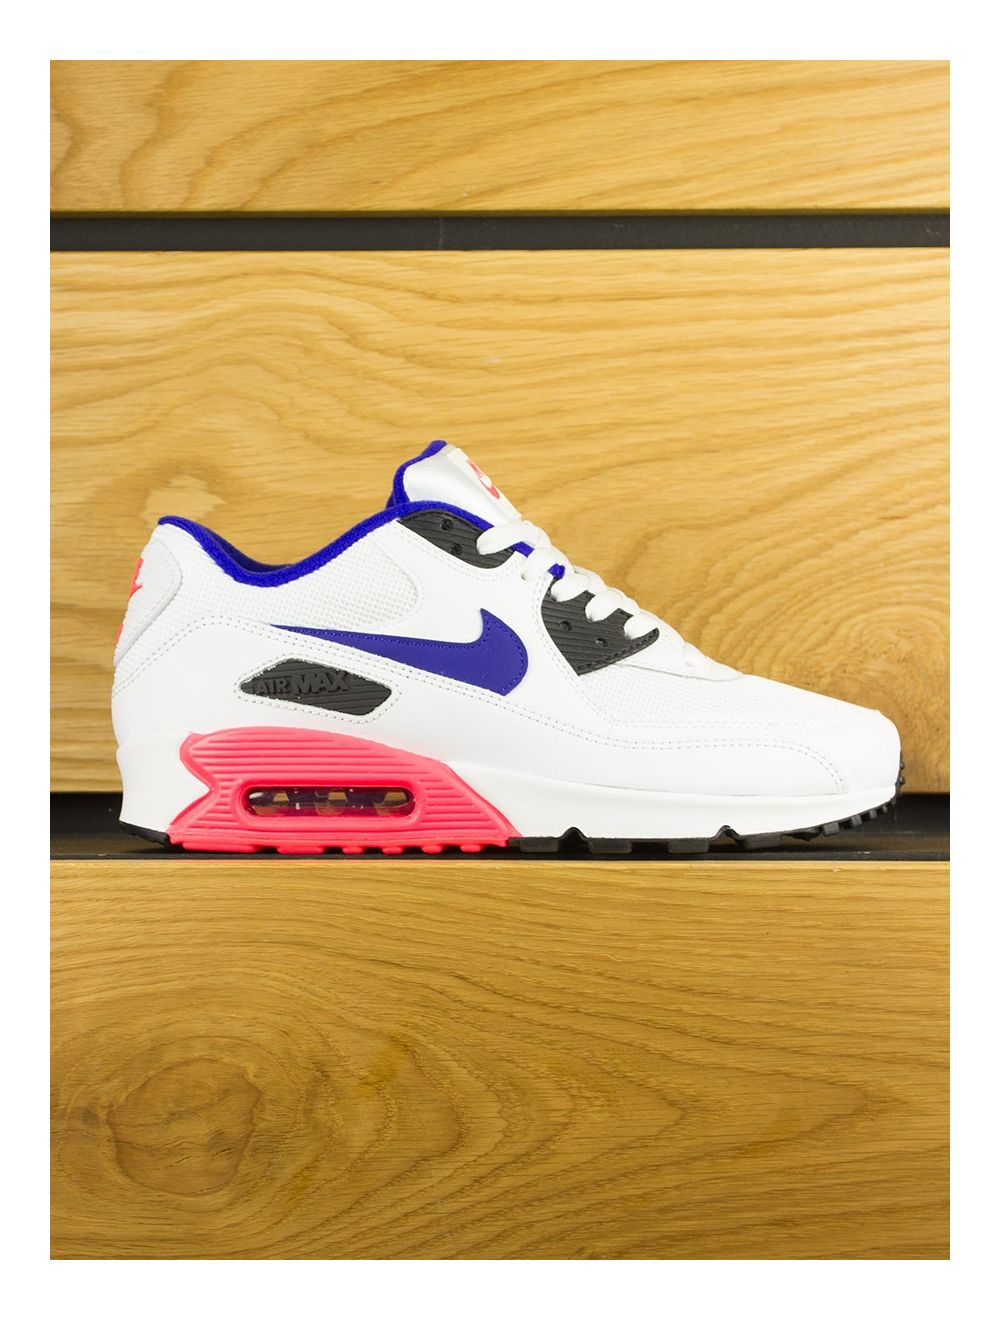 Nike Air Max 90 'OG 180' White Ultramarine Solar Red